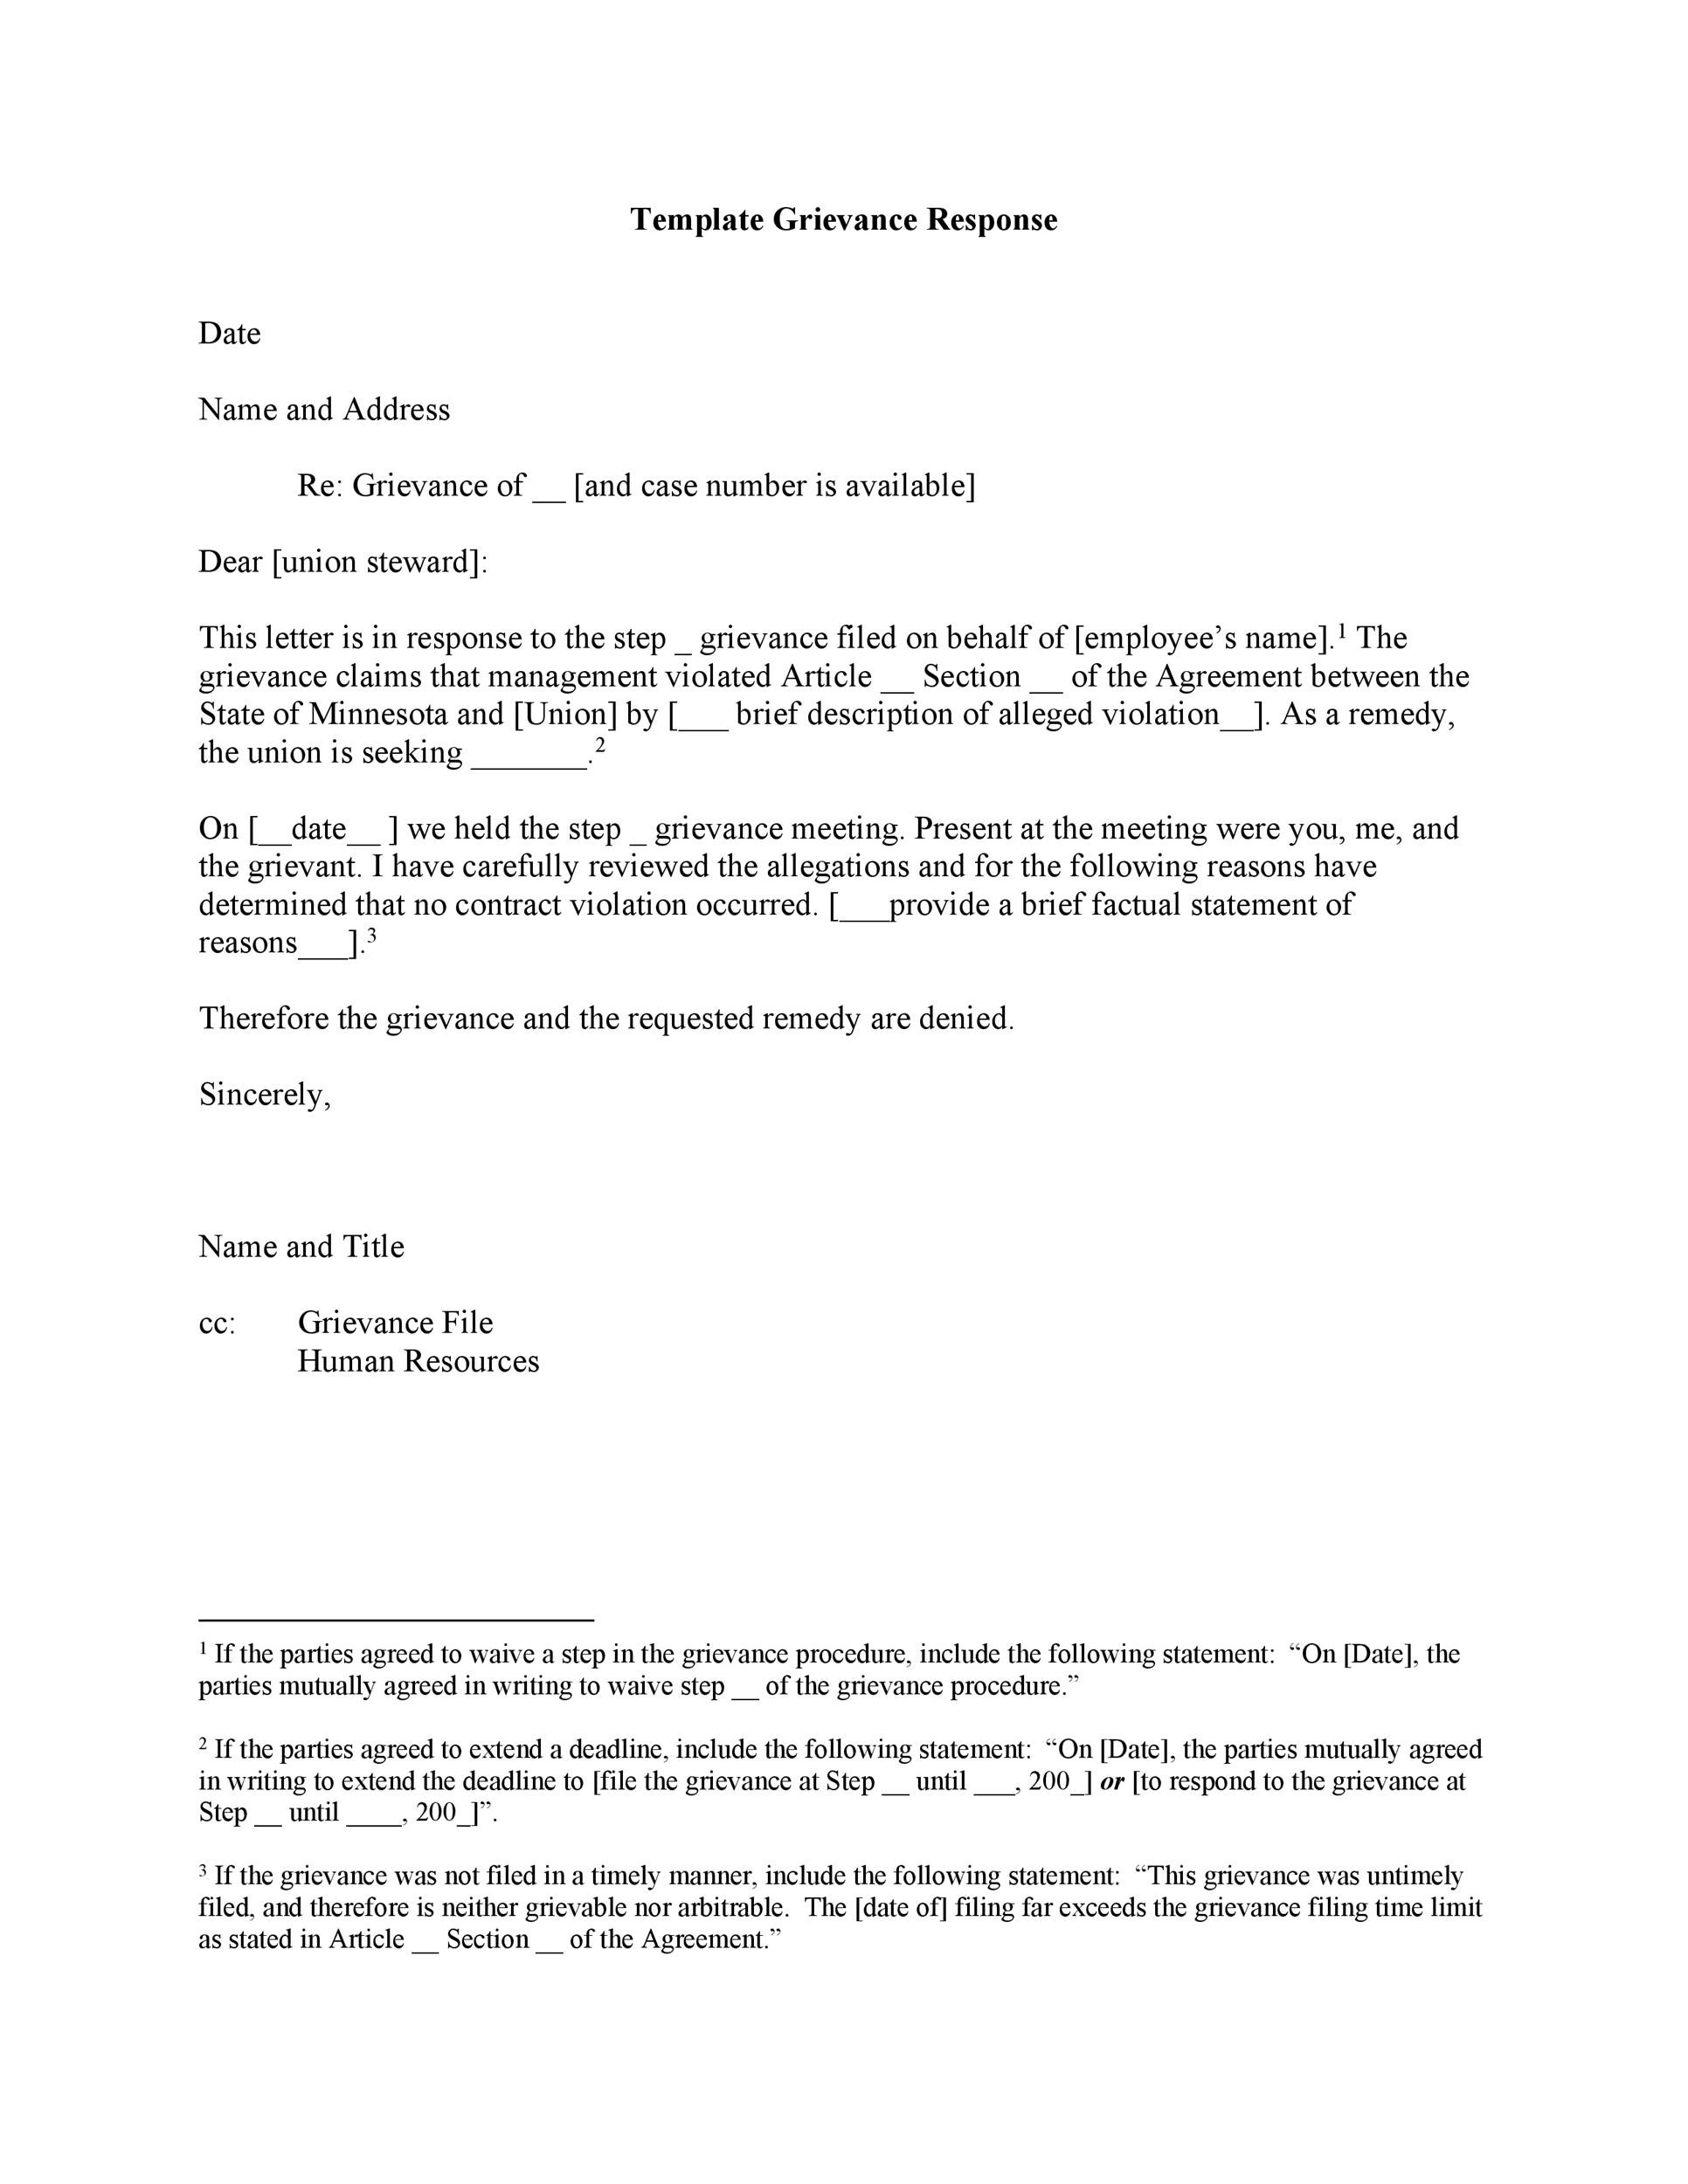 Free grievance letter 08